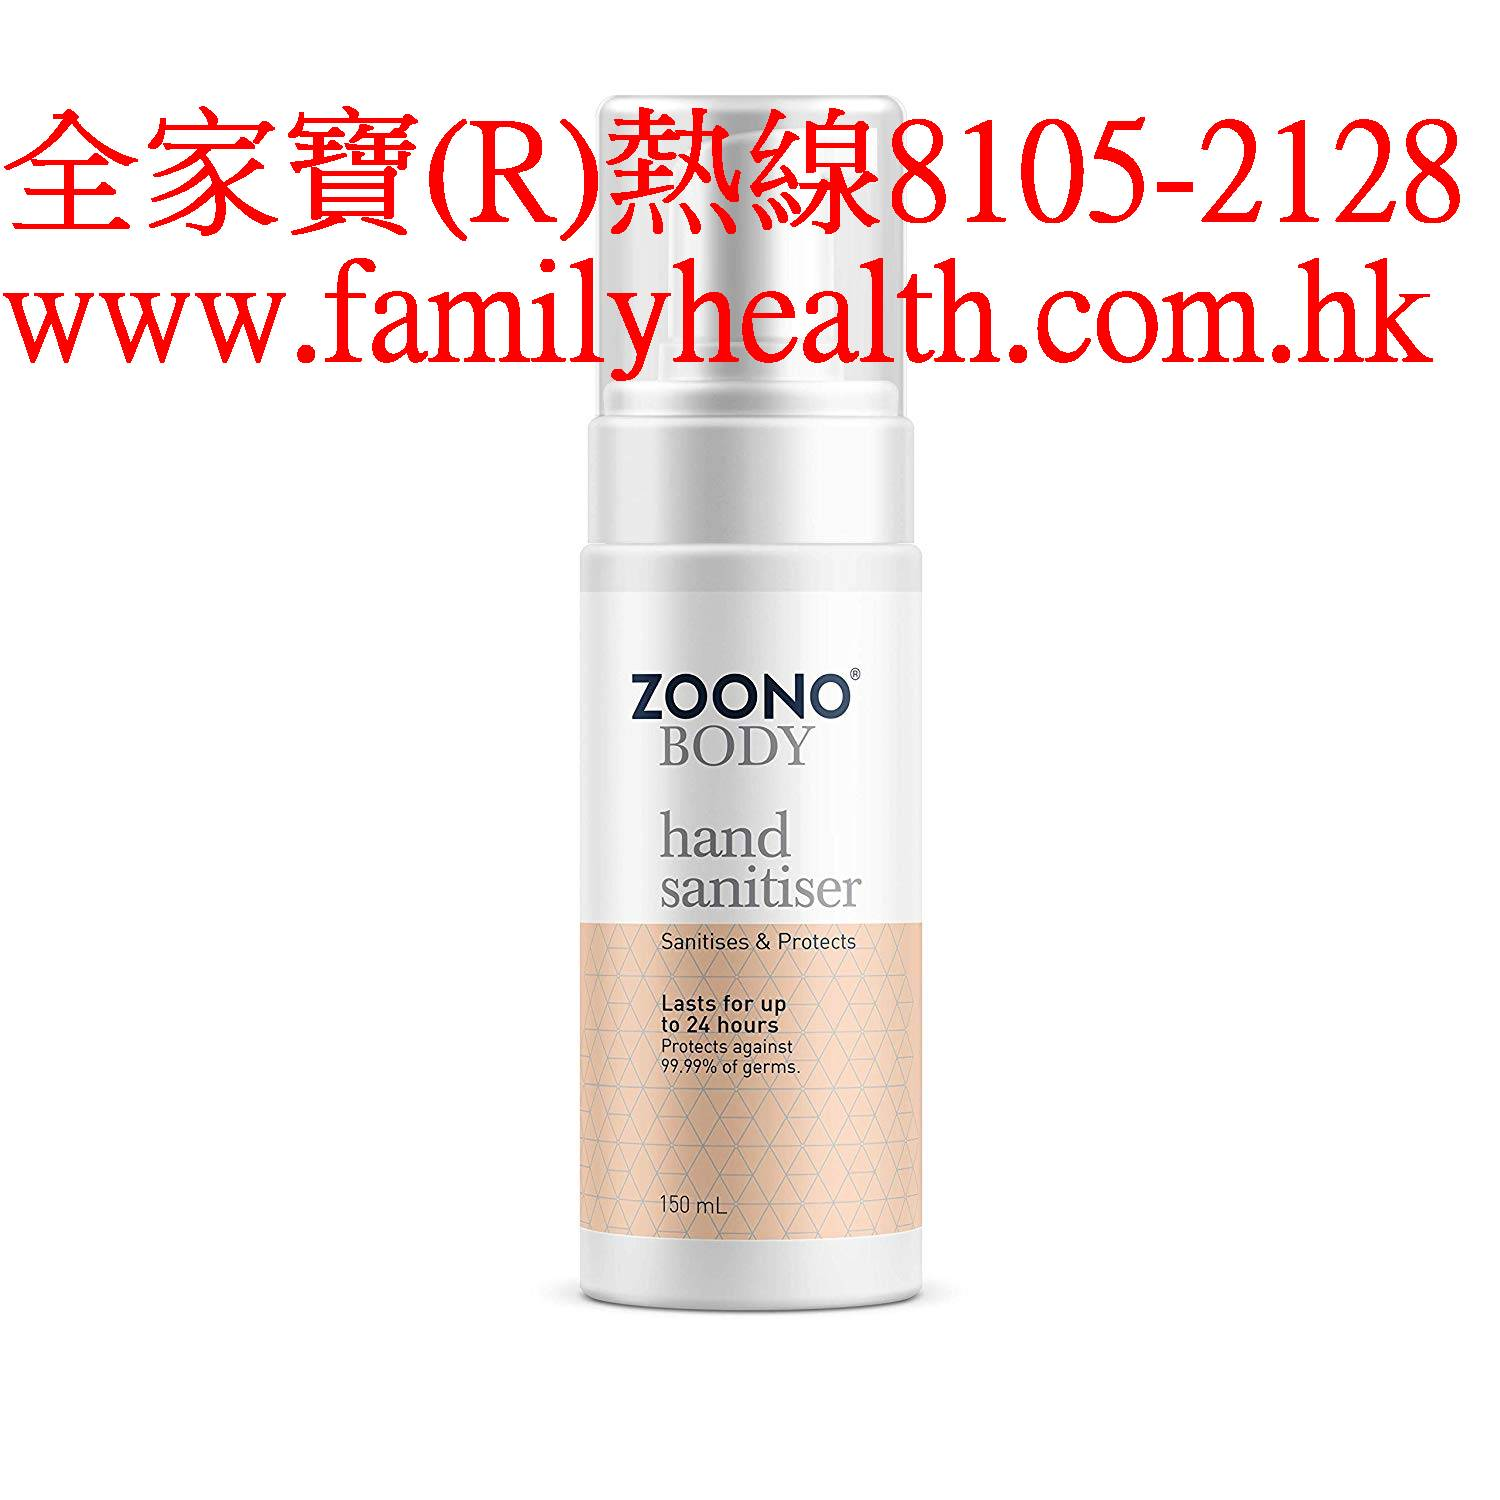 http://www.familyhealth.com.hk/files/full/1074_0.jpg